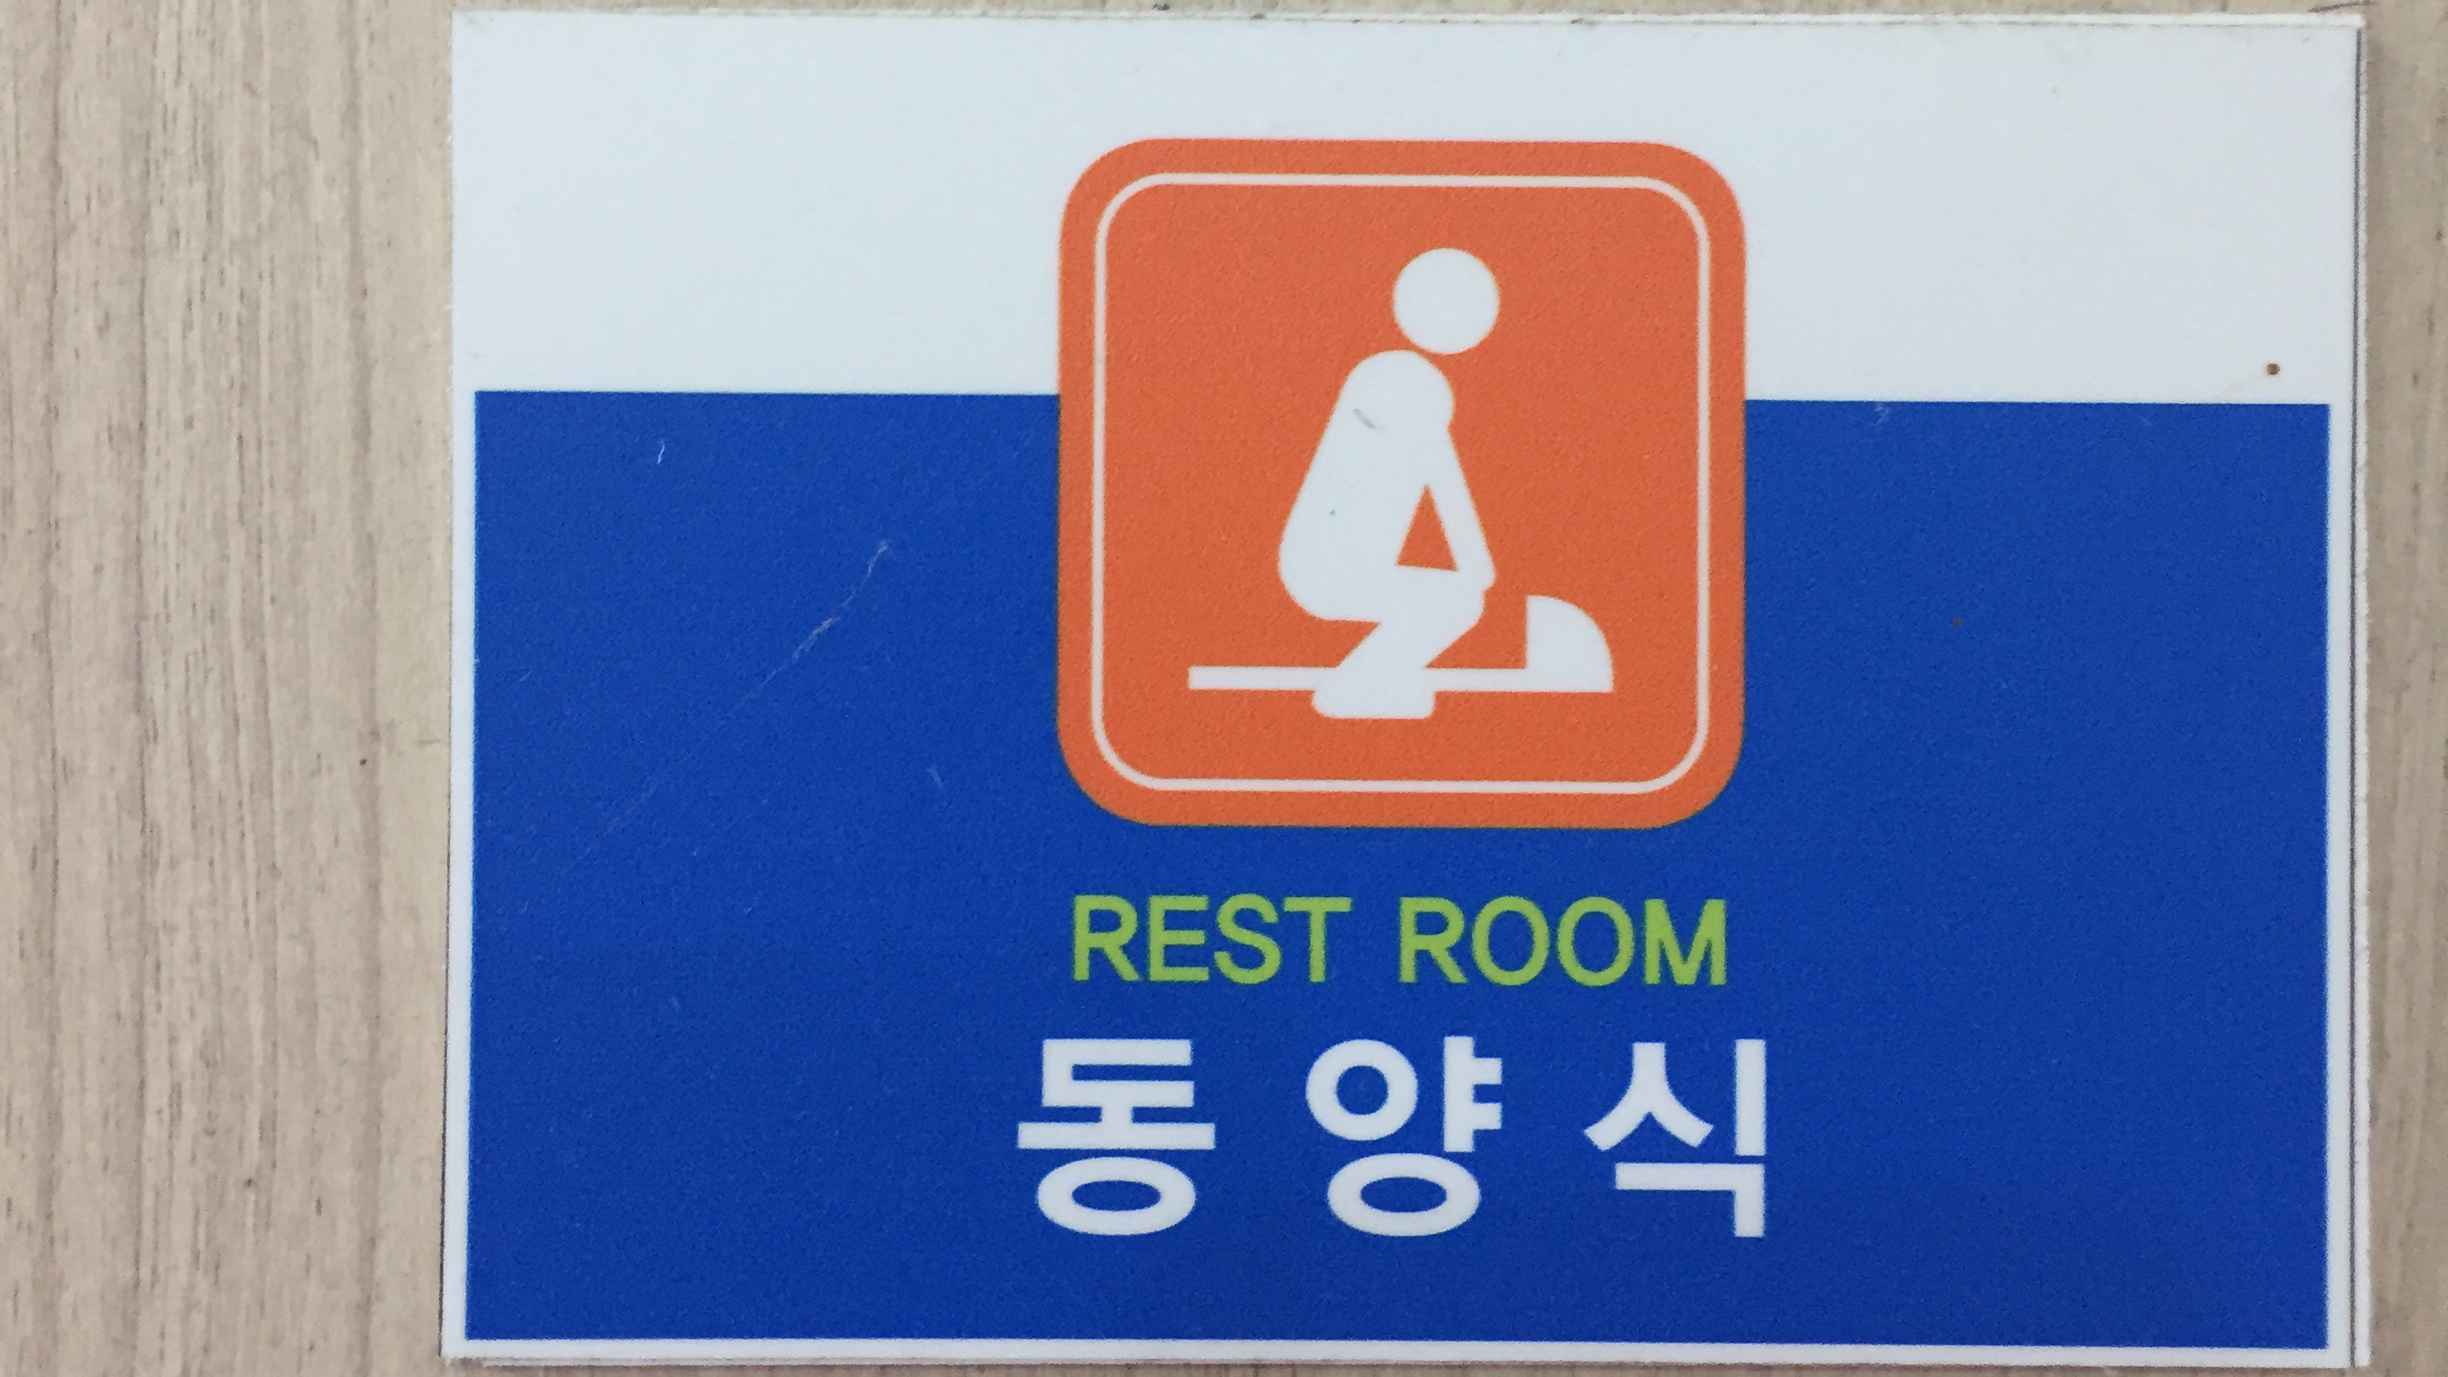 squatty potty bathroom south korea 16×9_639570